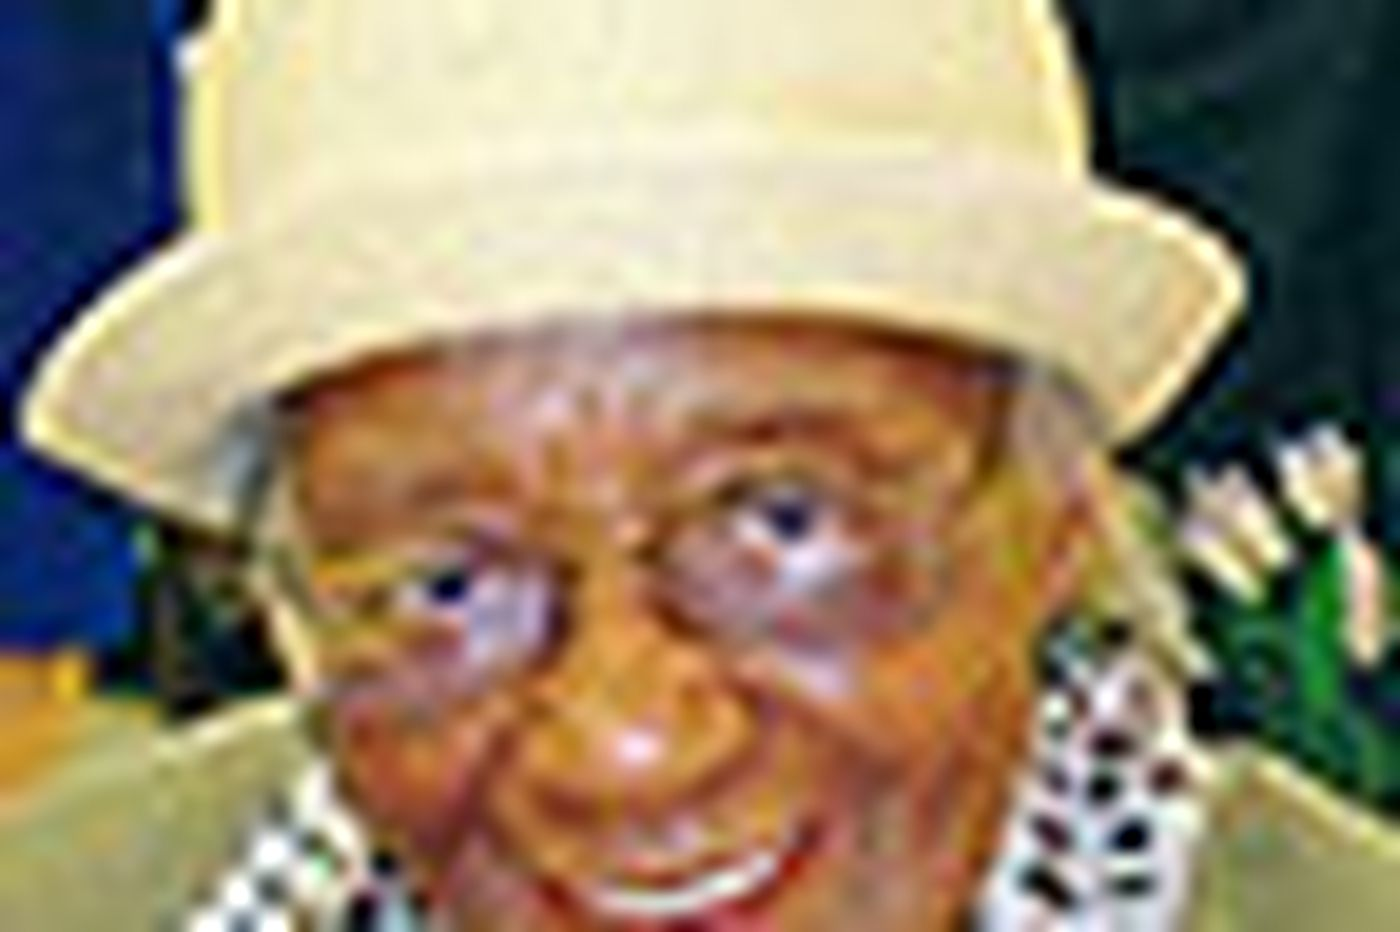 103-year-old Annabelle Williams